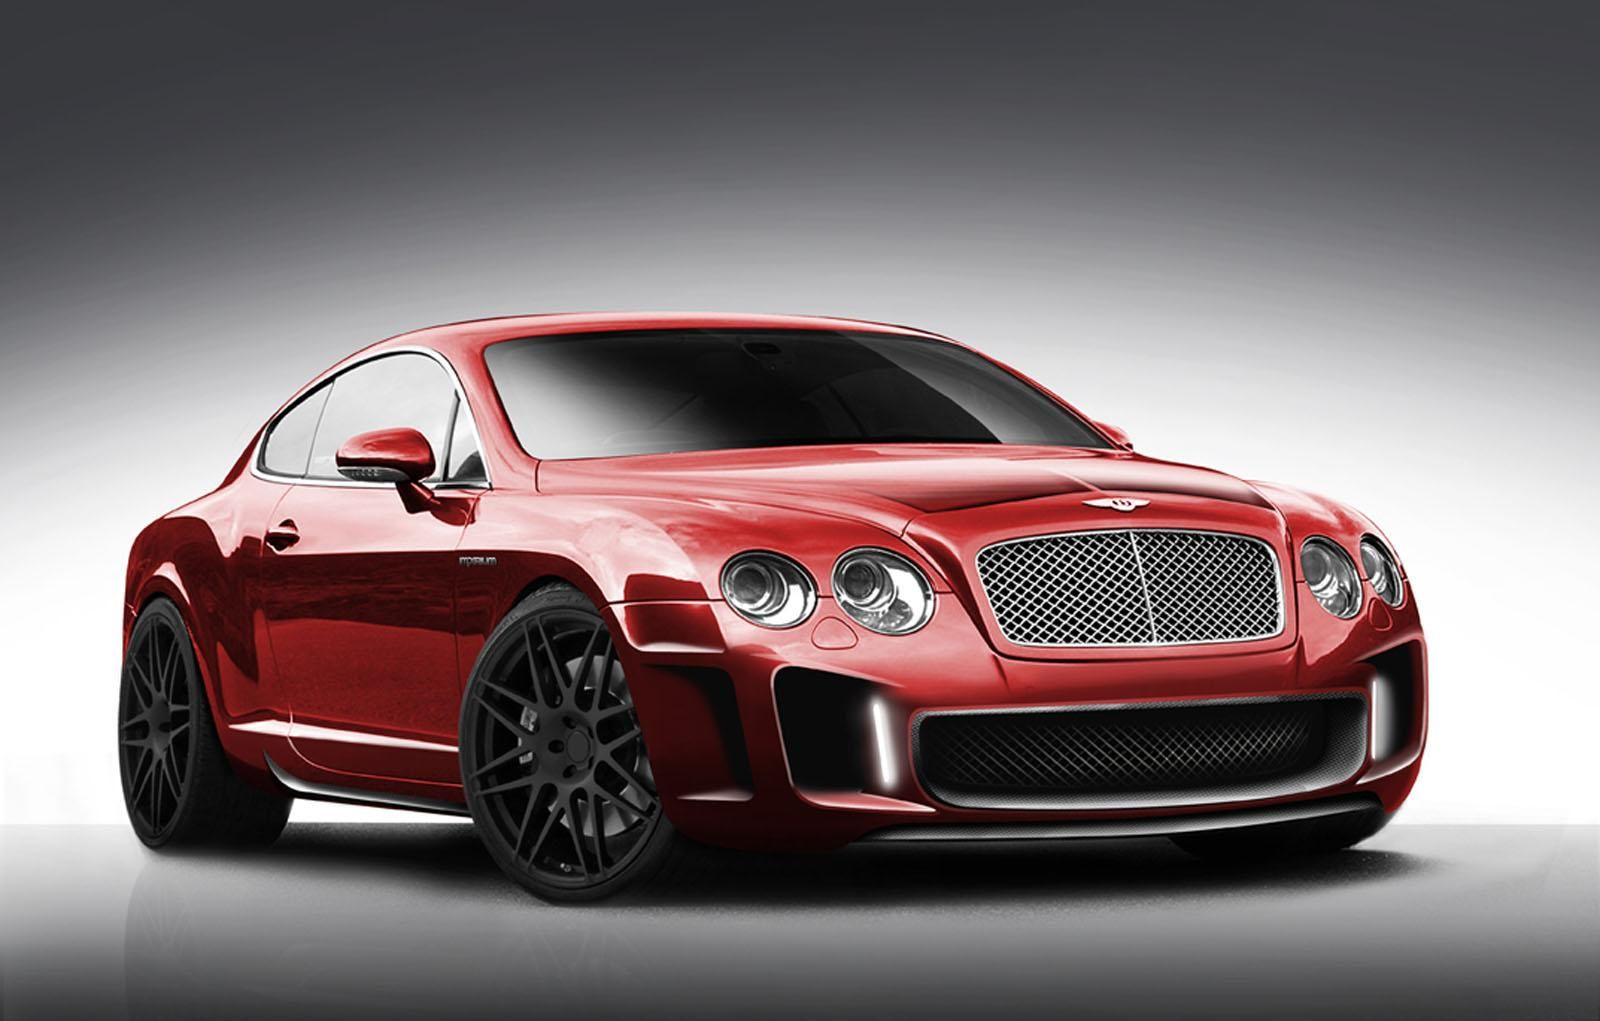 bentley luxury car photo download bentley luxury car photo wallpaper in high resolution bentley. Black Bedroom Furniture Sets. Home Design Ideas